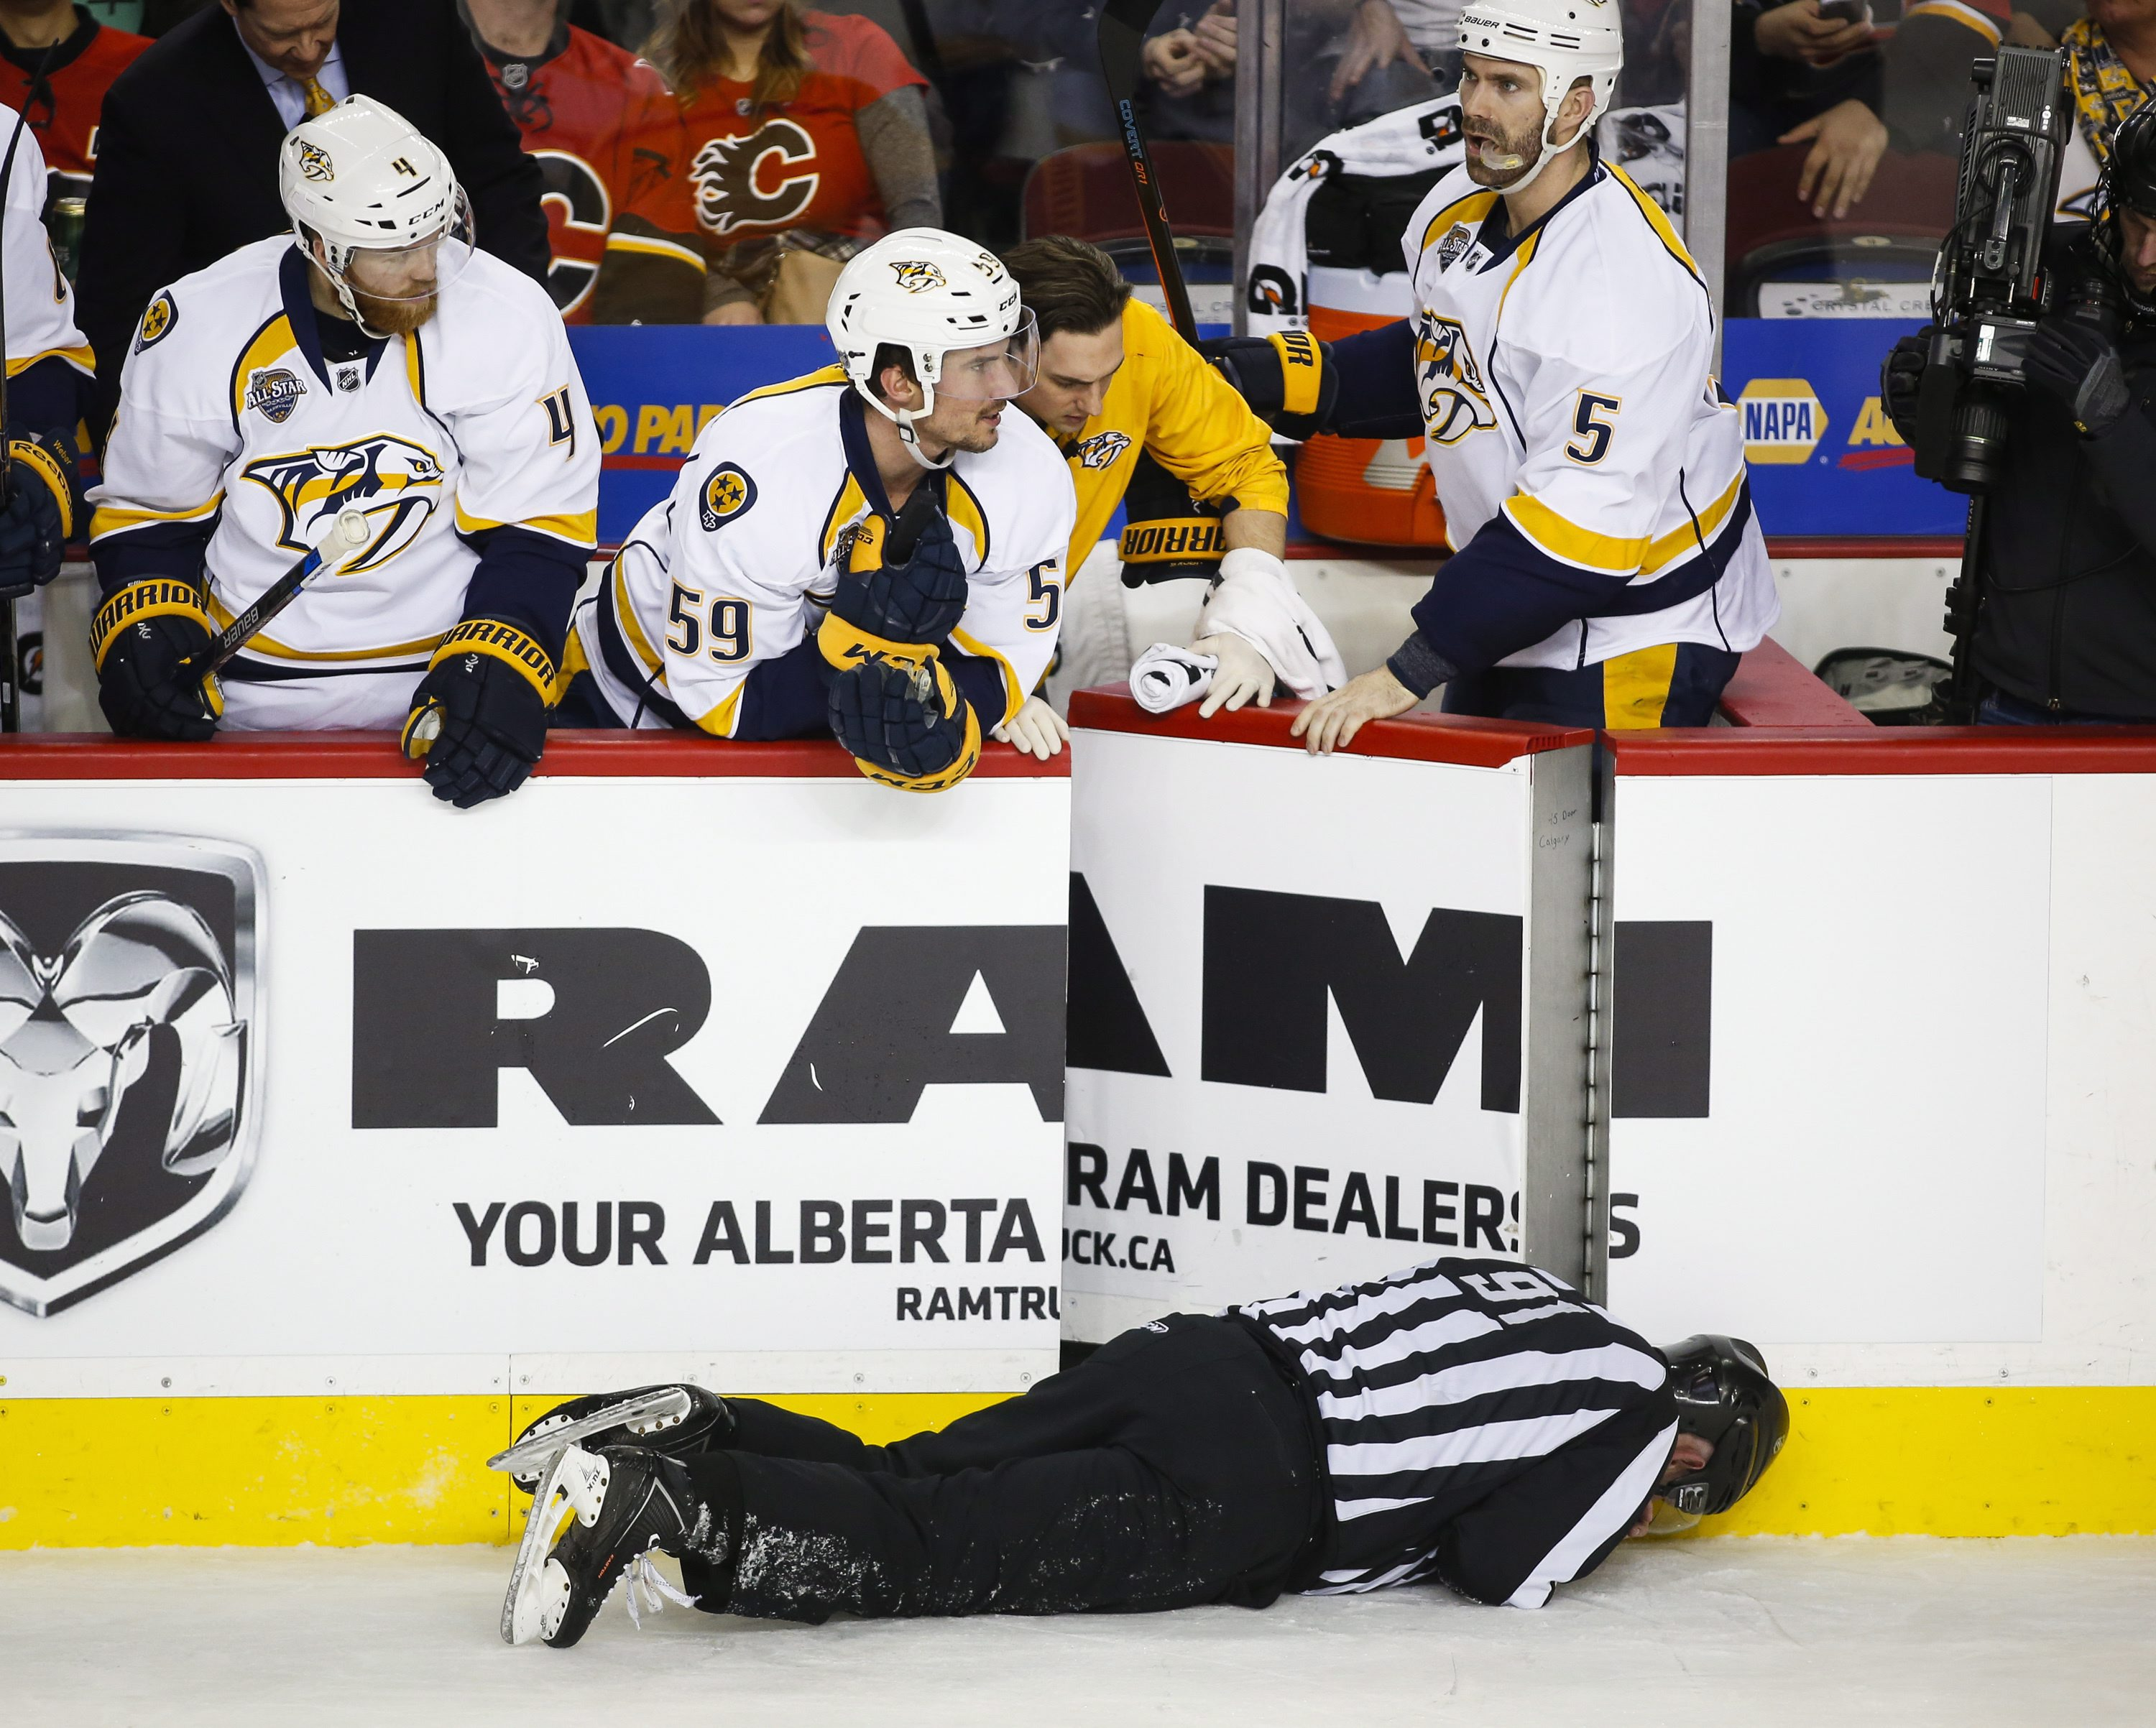 FILE - This Jan. 27, 2016 file photo shows Nashville Predators' players looking over the bench at linesman Don Henderson after he was hit by Calgary Flames' Dennis Wideman during second period NHL hockey action in Calgary, Alberta. Wideman's 20-game suspe